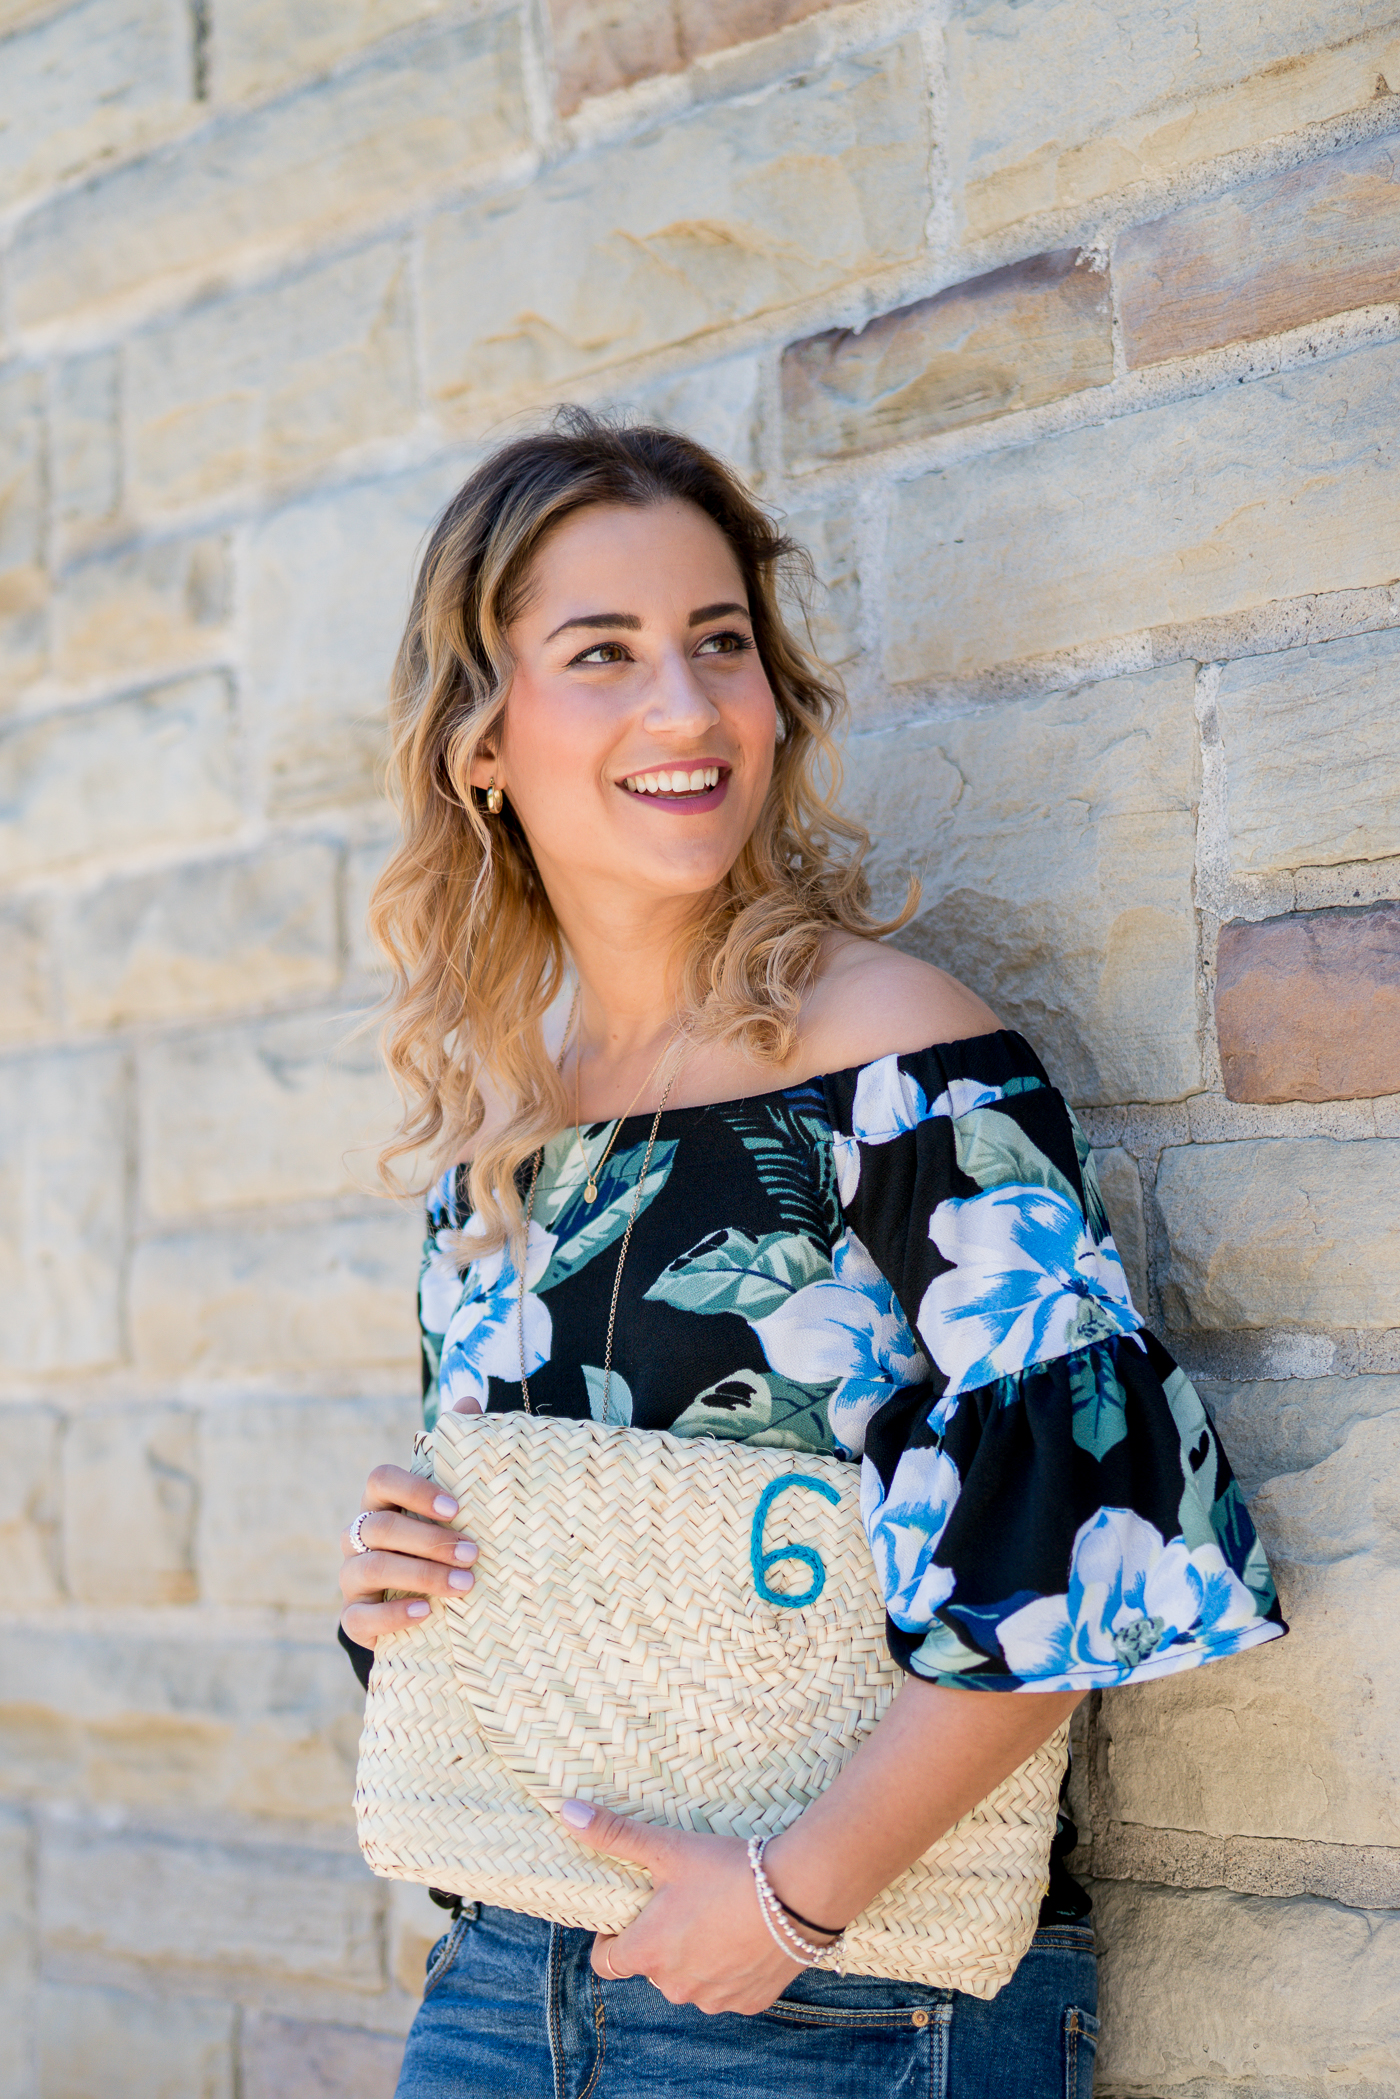 toronto lifestyle and fashion blogger, Jackie at Something About That, wearing a l'enveloppe clutch from tuck shop trading co. and poolside bags collection